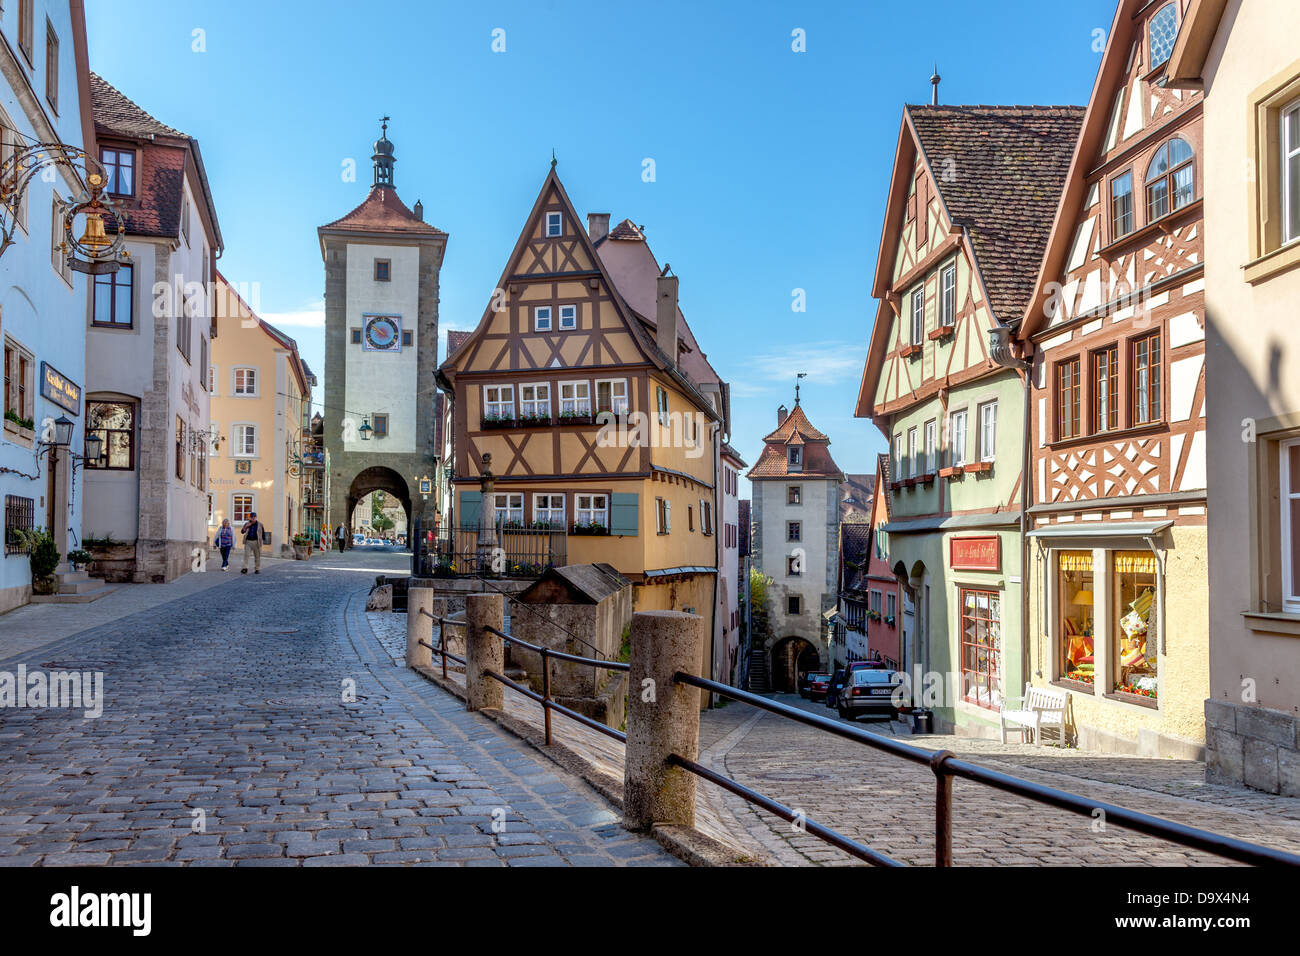 Traditional street view, Rothenburg ob der Tauber, Germany, Europe. - Stock Image